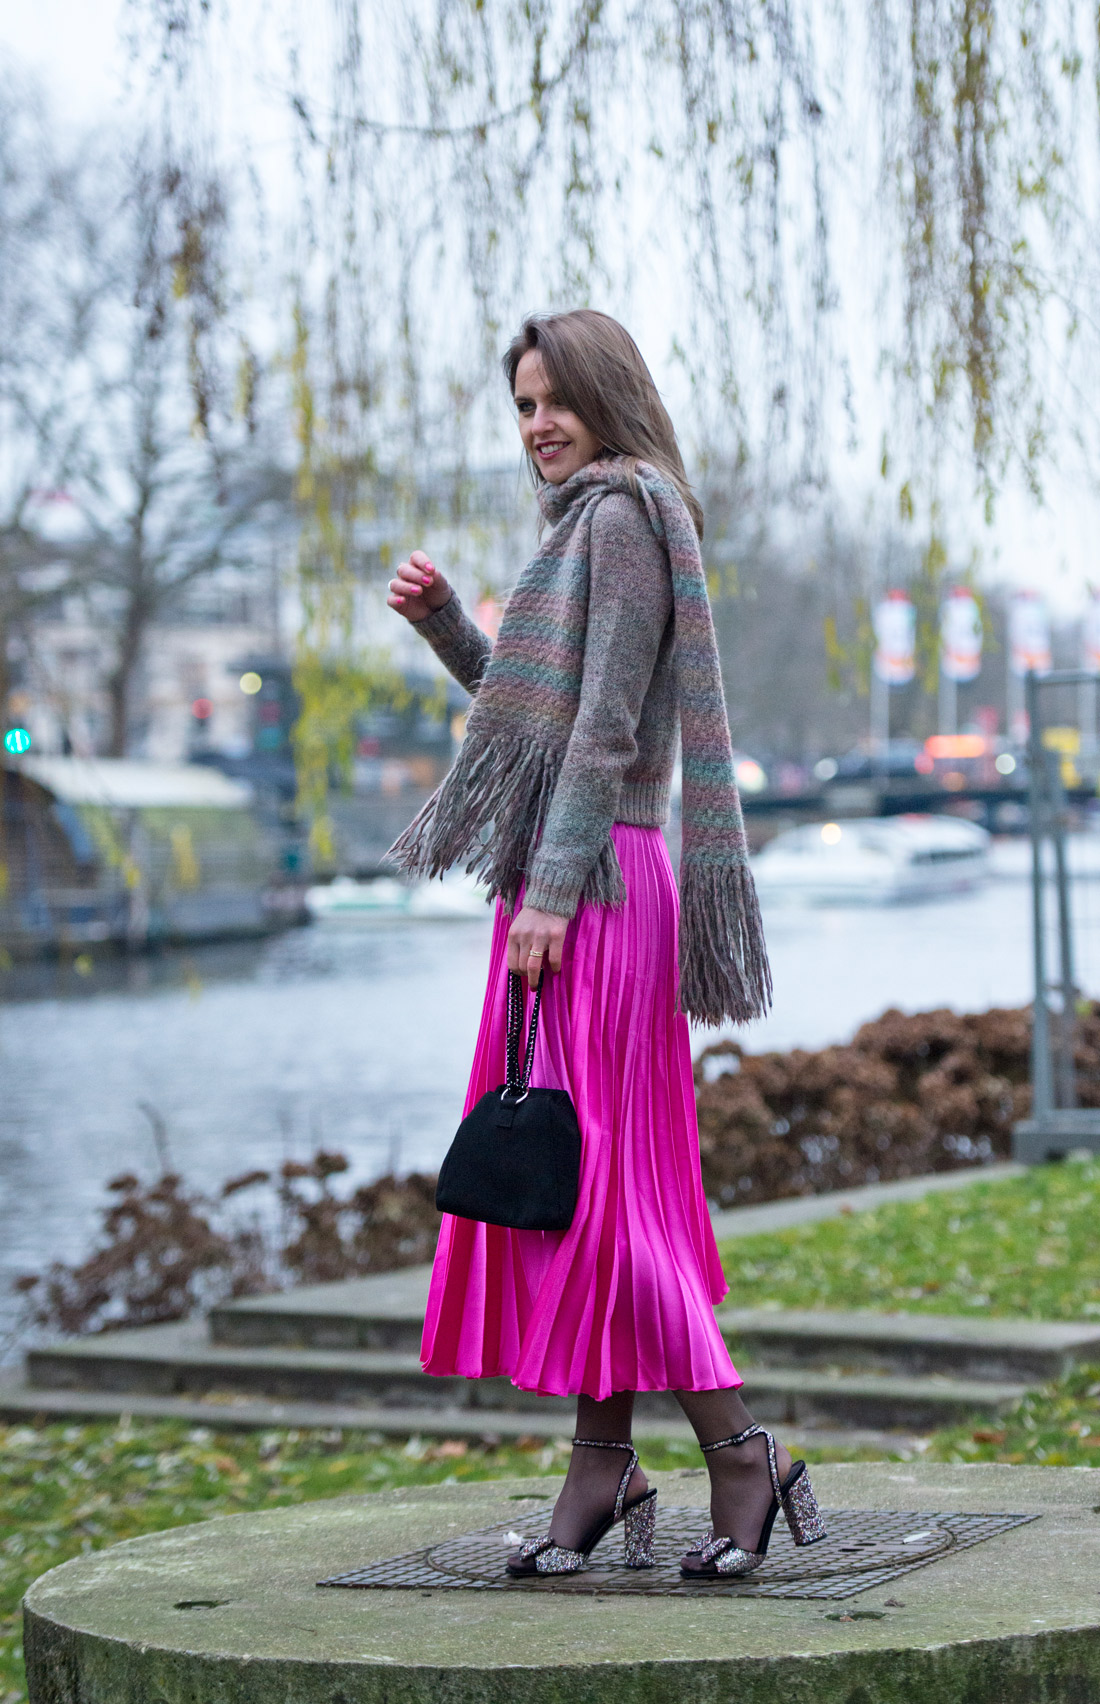 Bag-at-you---Fashion-blog---Pink-skirt-for-winter